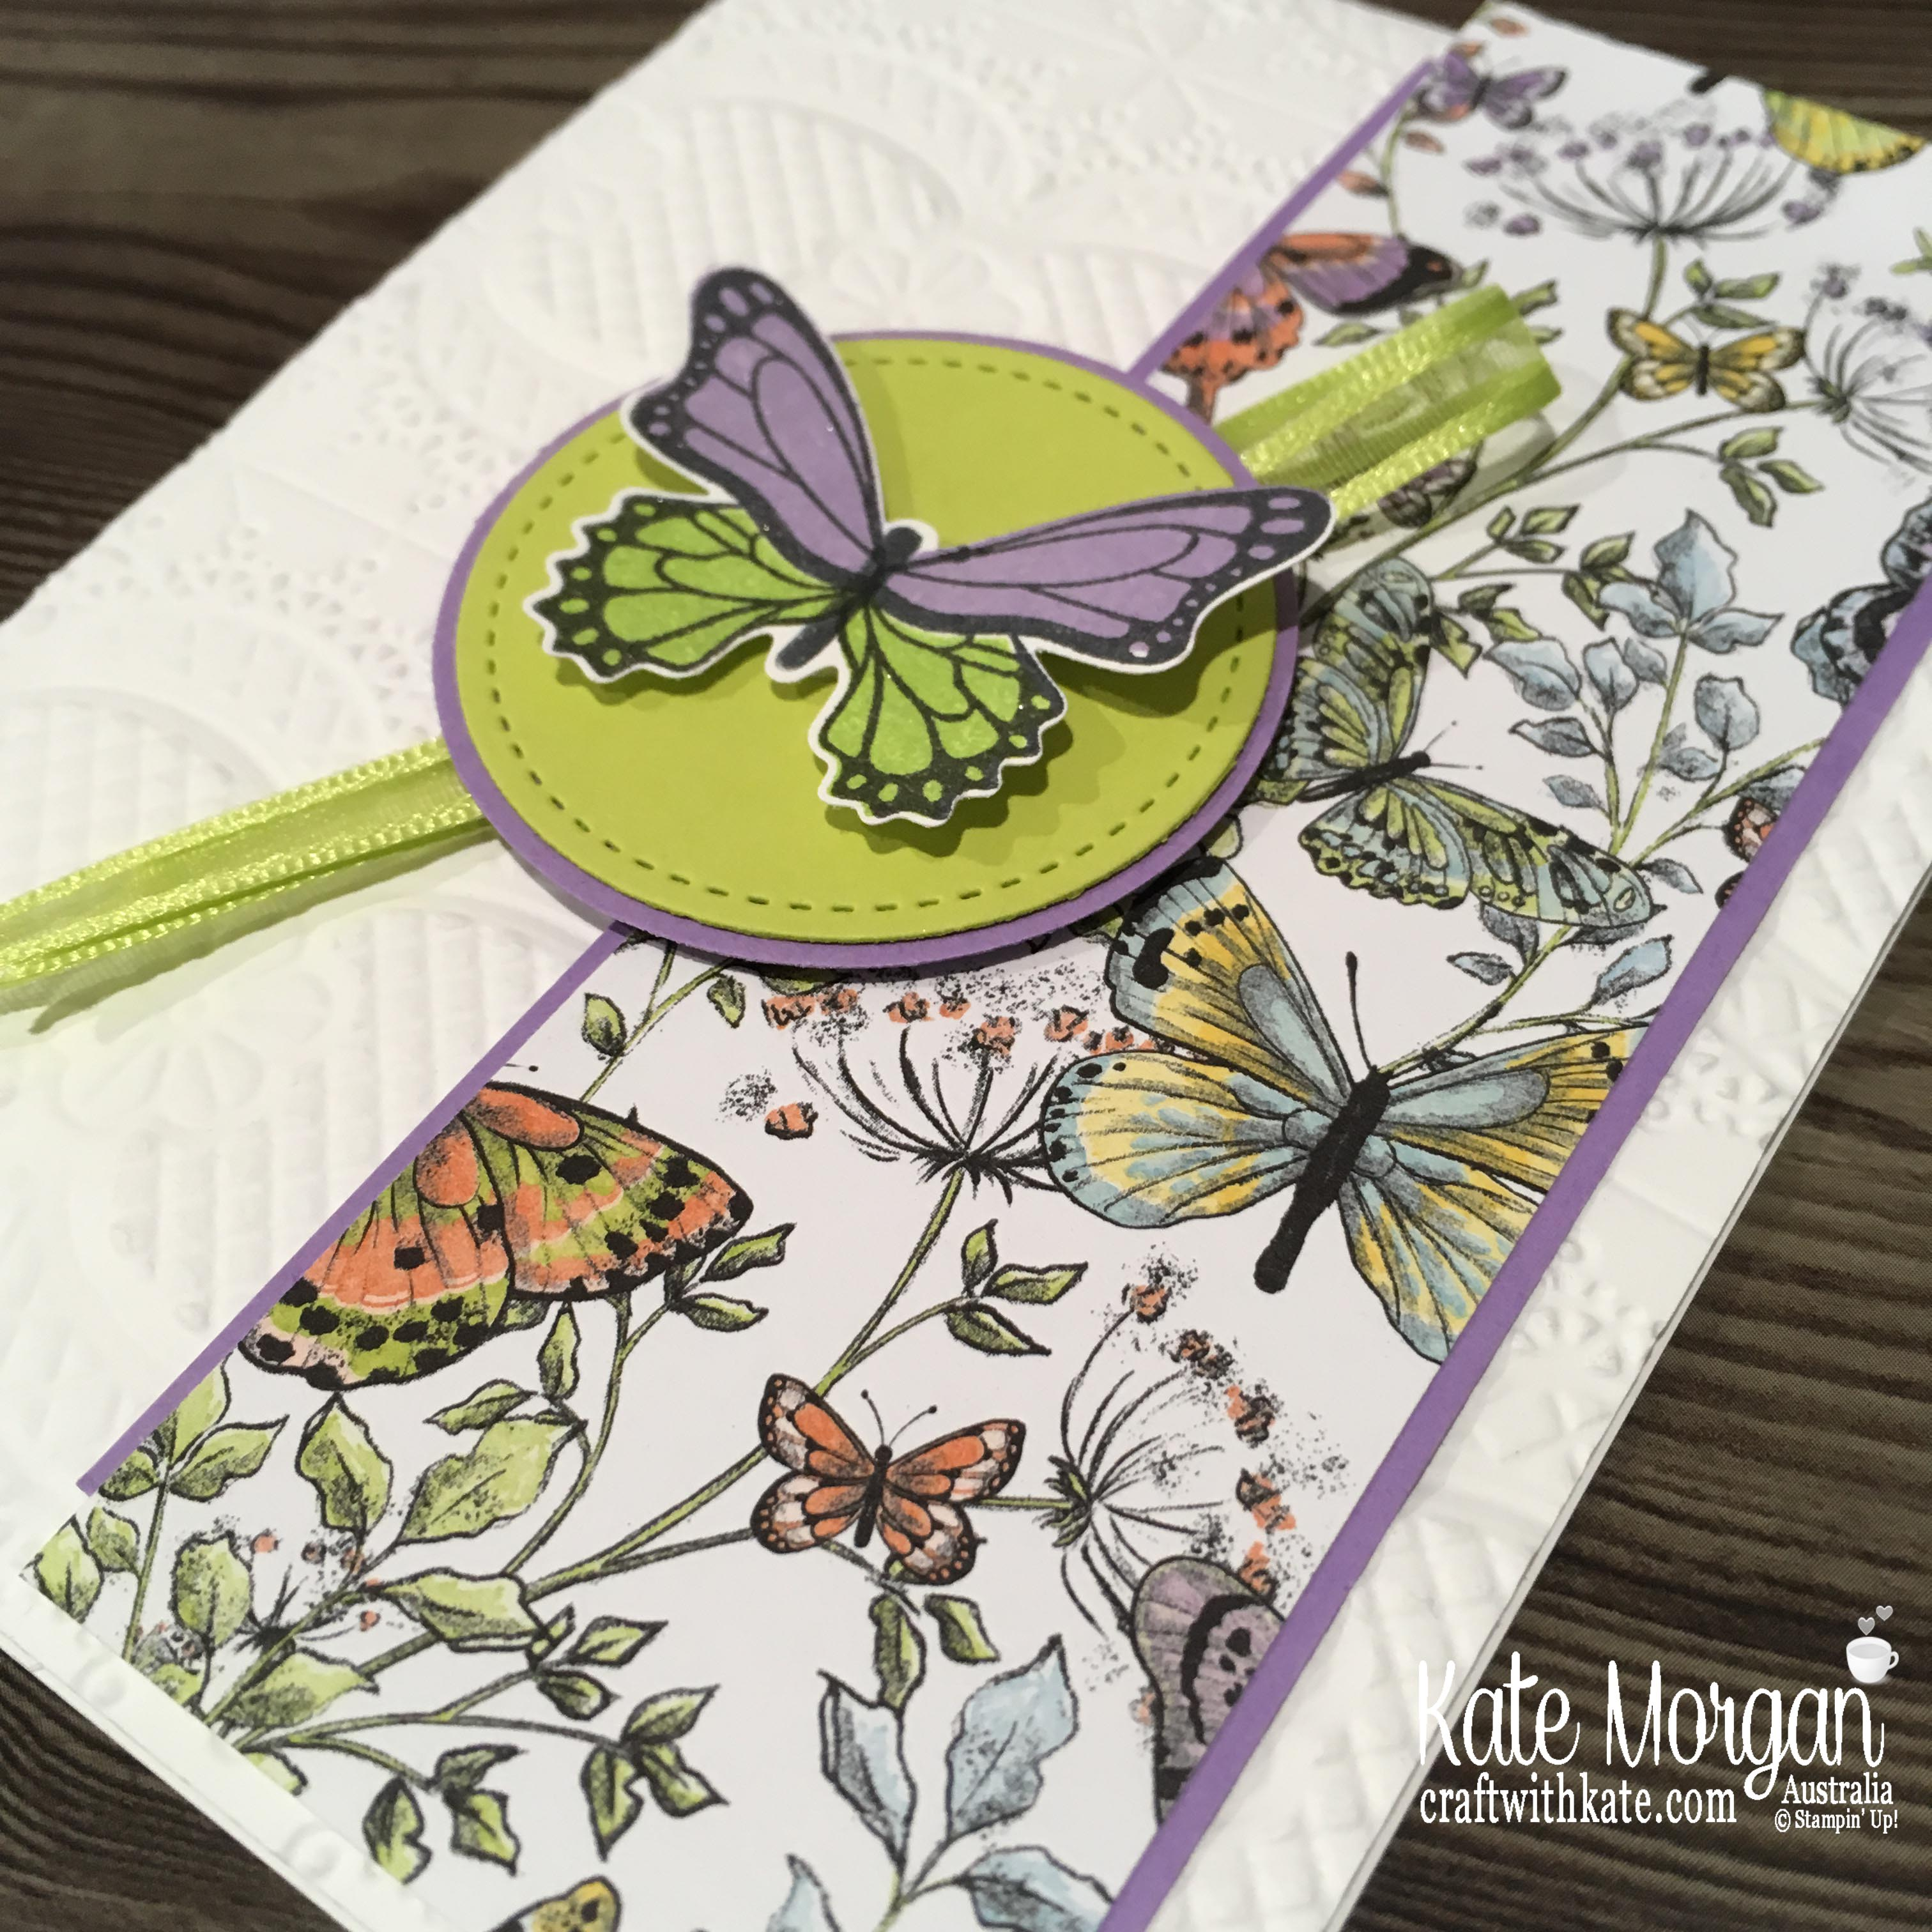 Butterfly Gala & Botantical Butterfly DSP Stampin Up Occasions, Saleabration by Kate Morgan, Australia 2019.